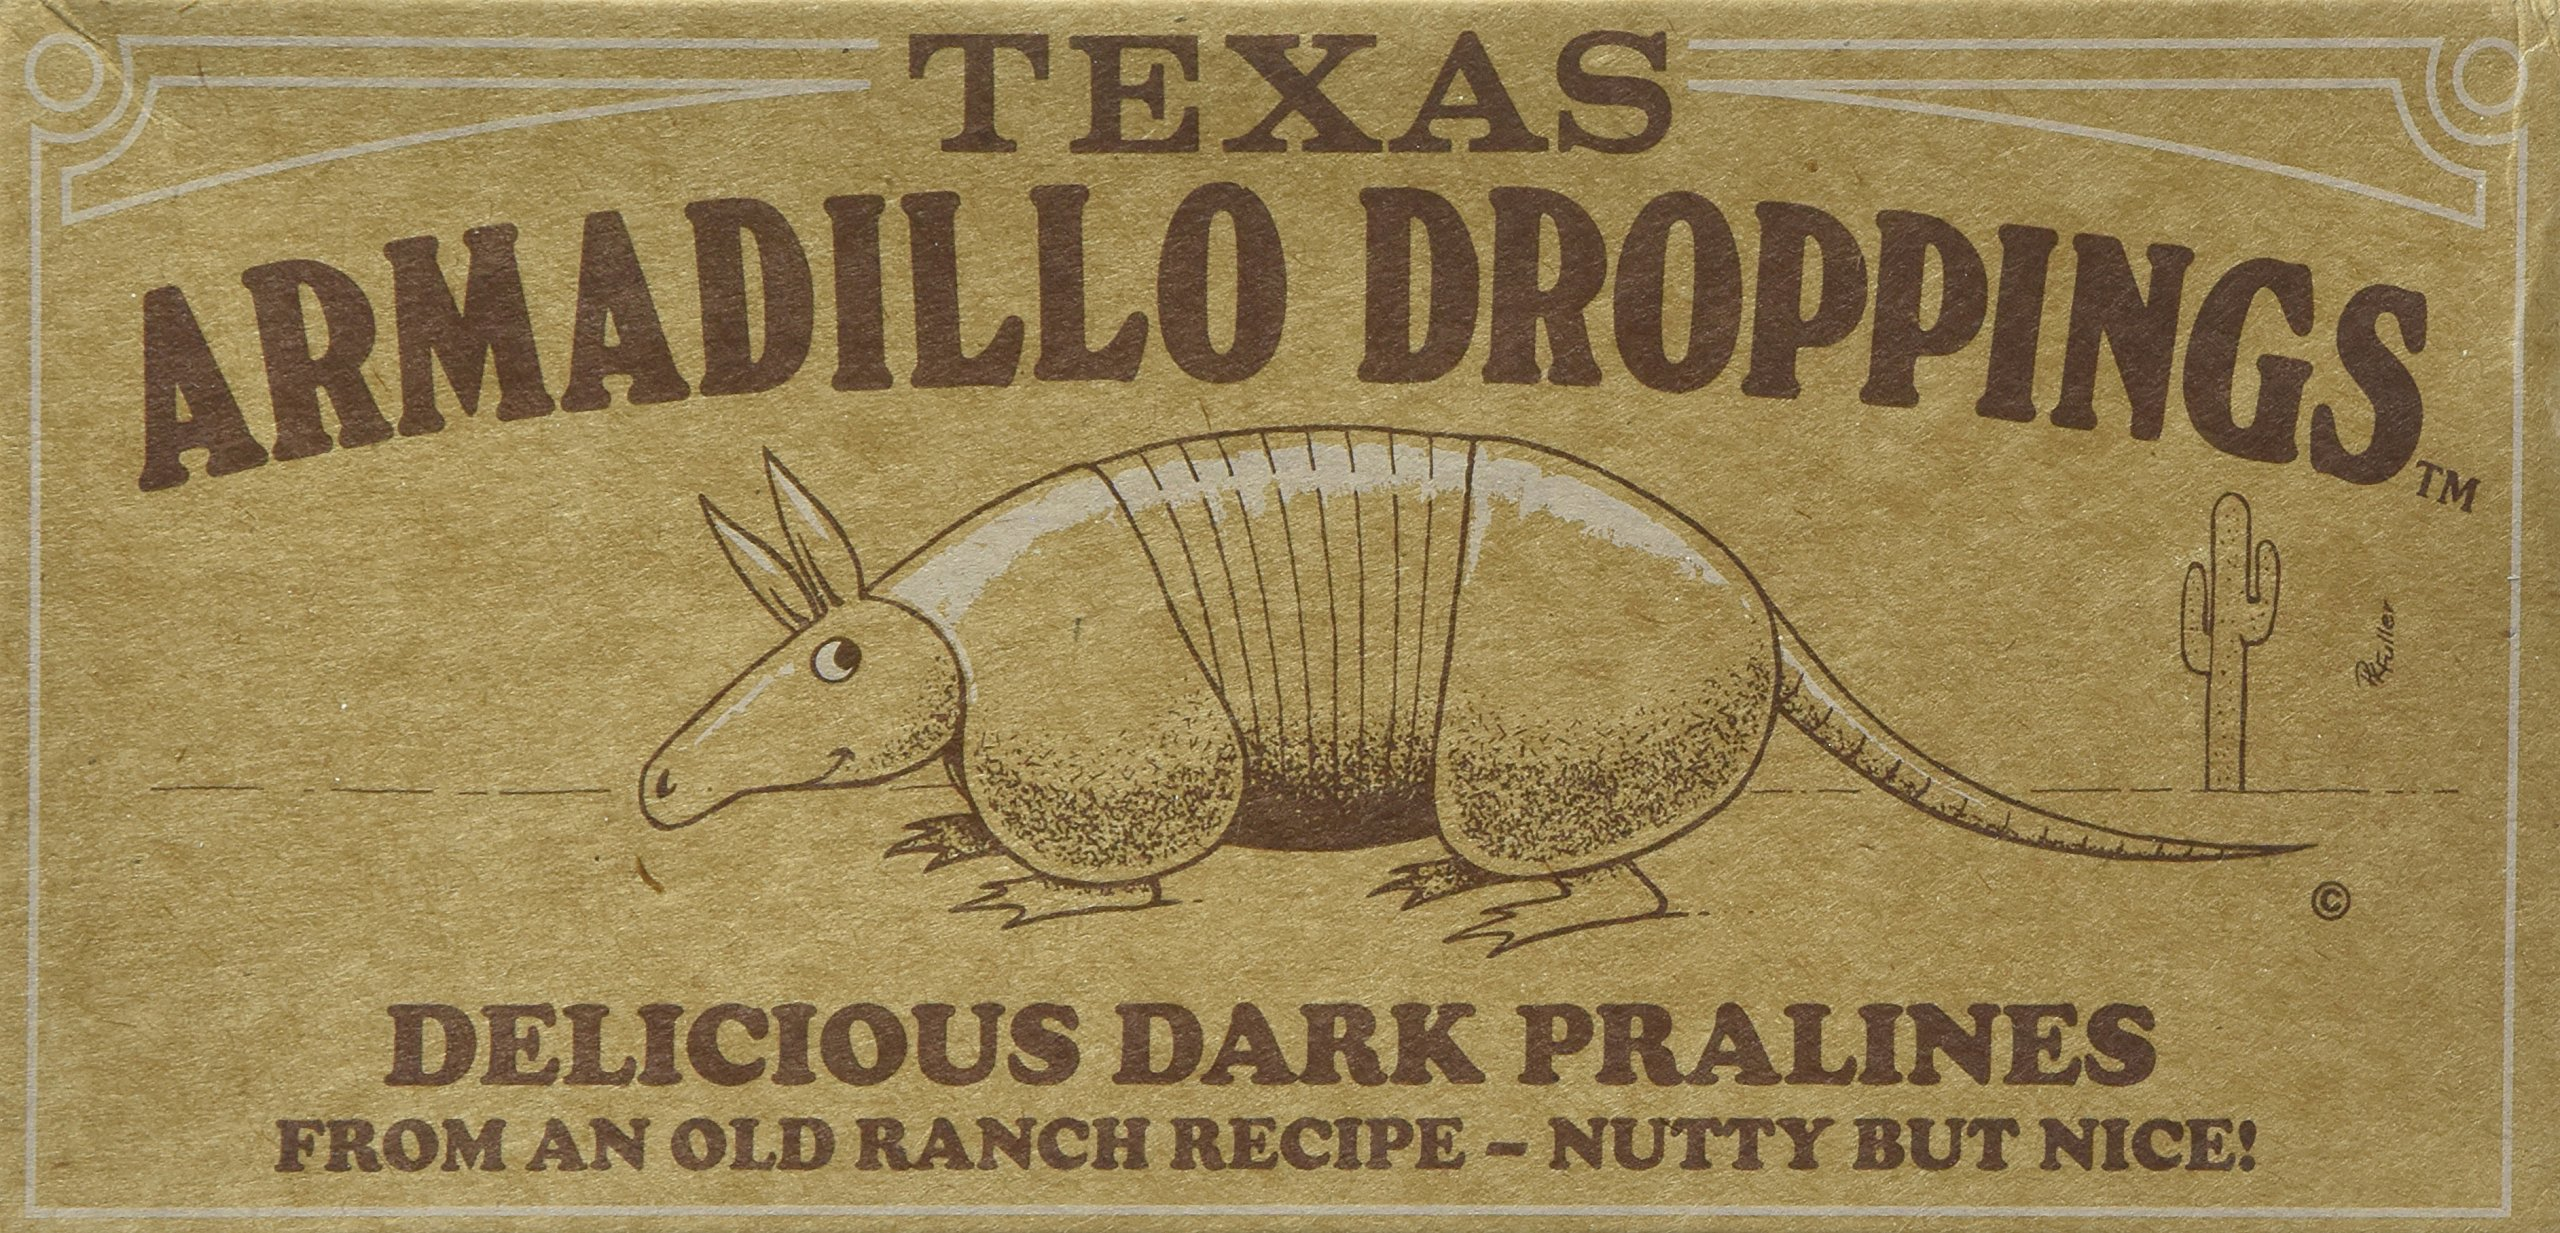 Texas Armadillo Droppings Delicious Dark Pecan Pralines Gift Box - 12 Oz. by Armadillo Droppings